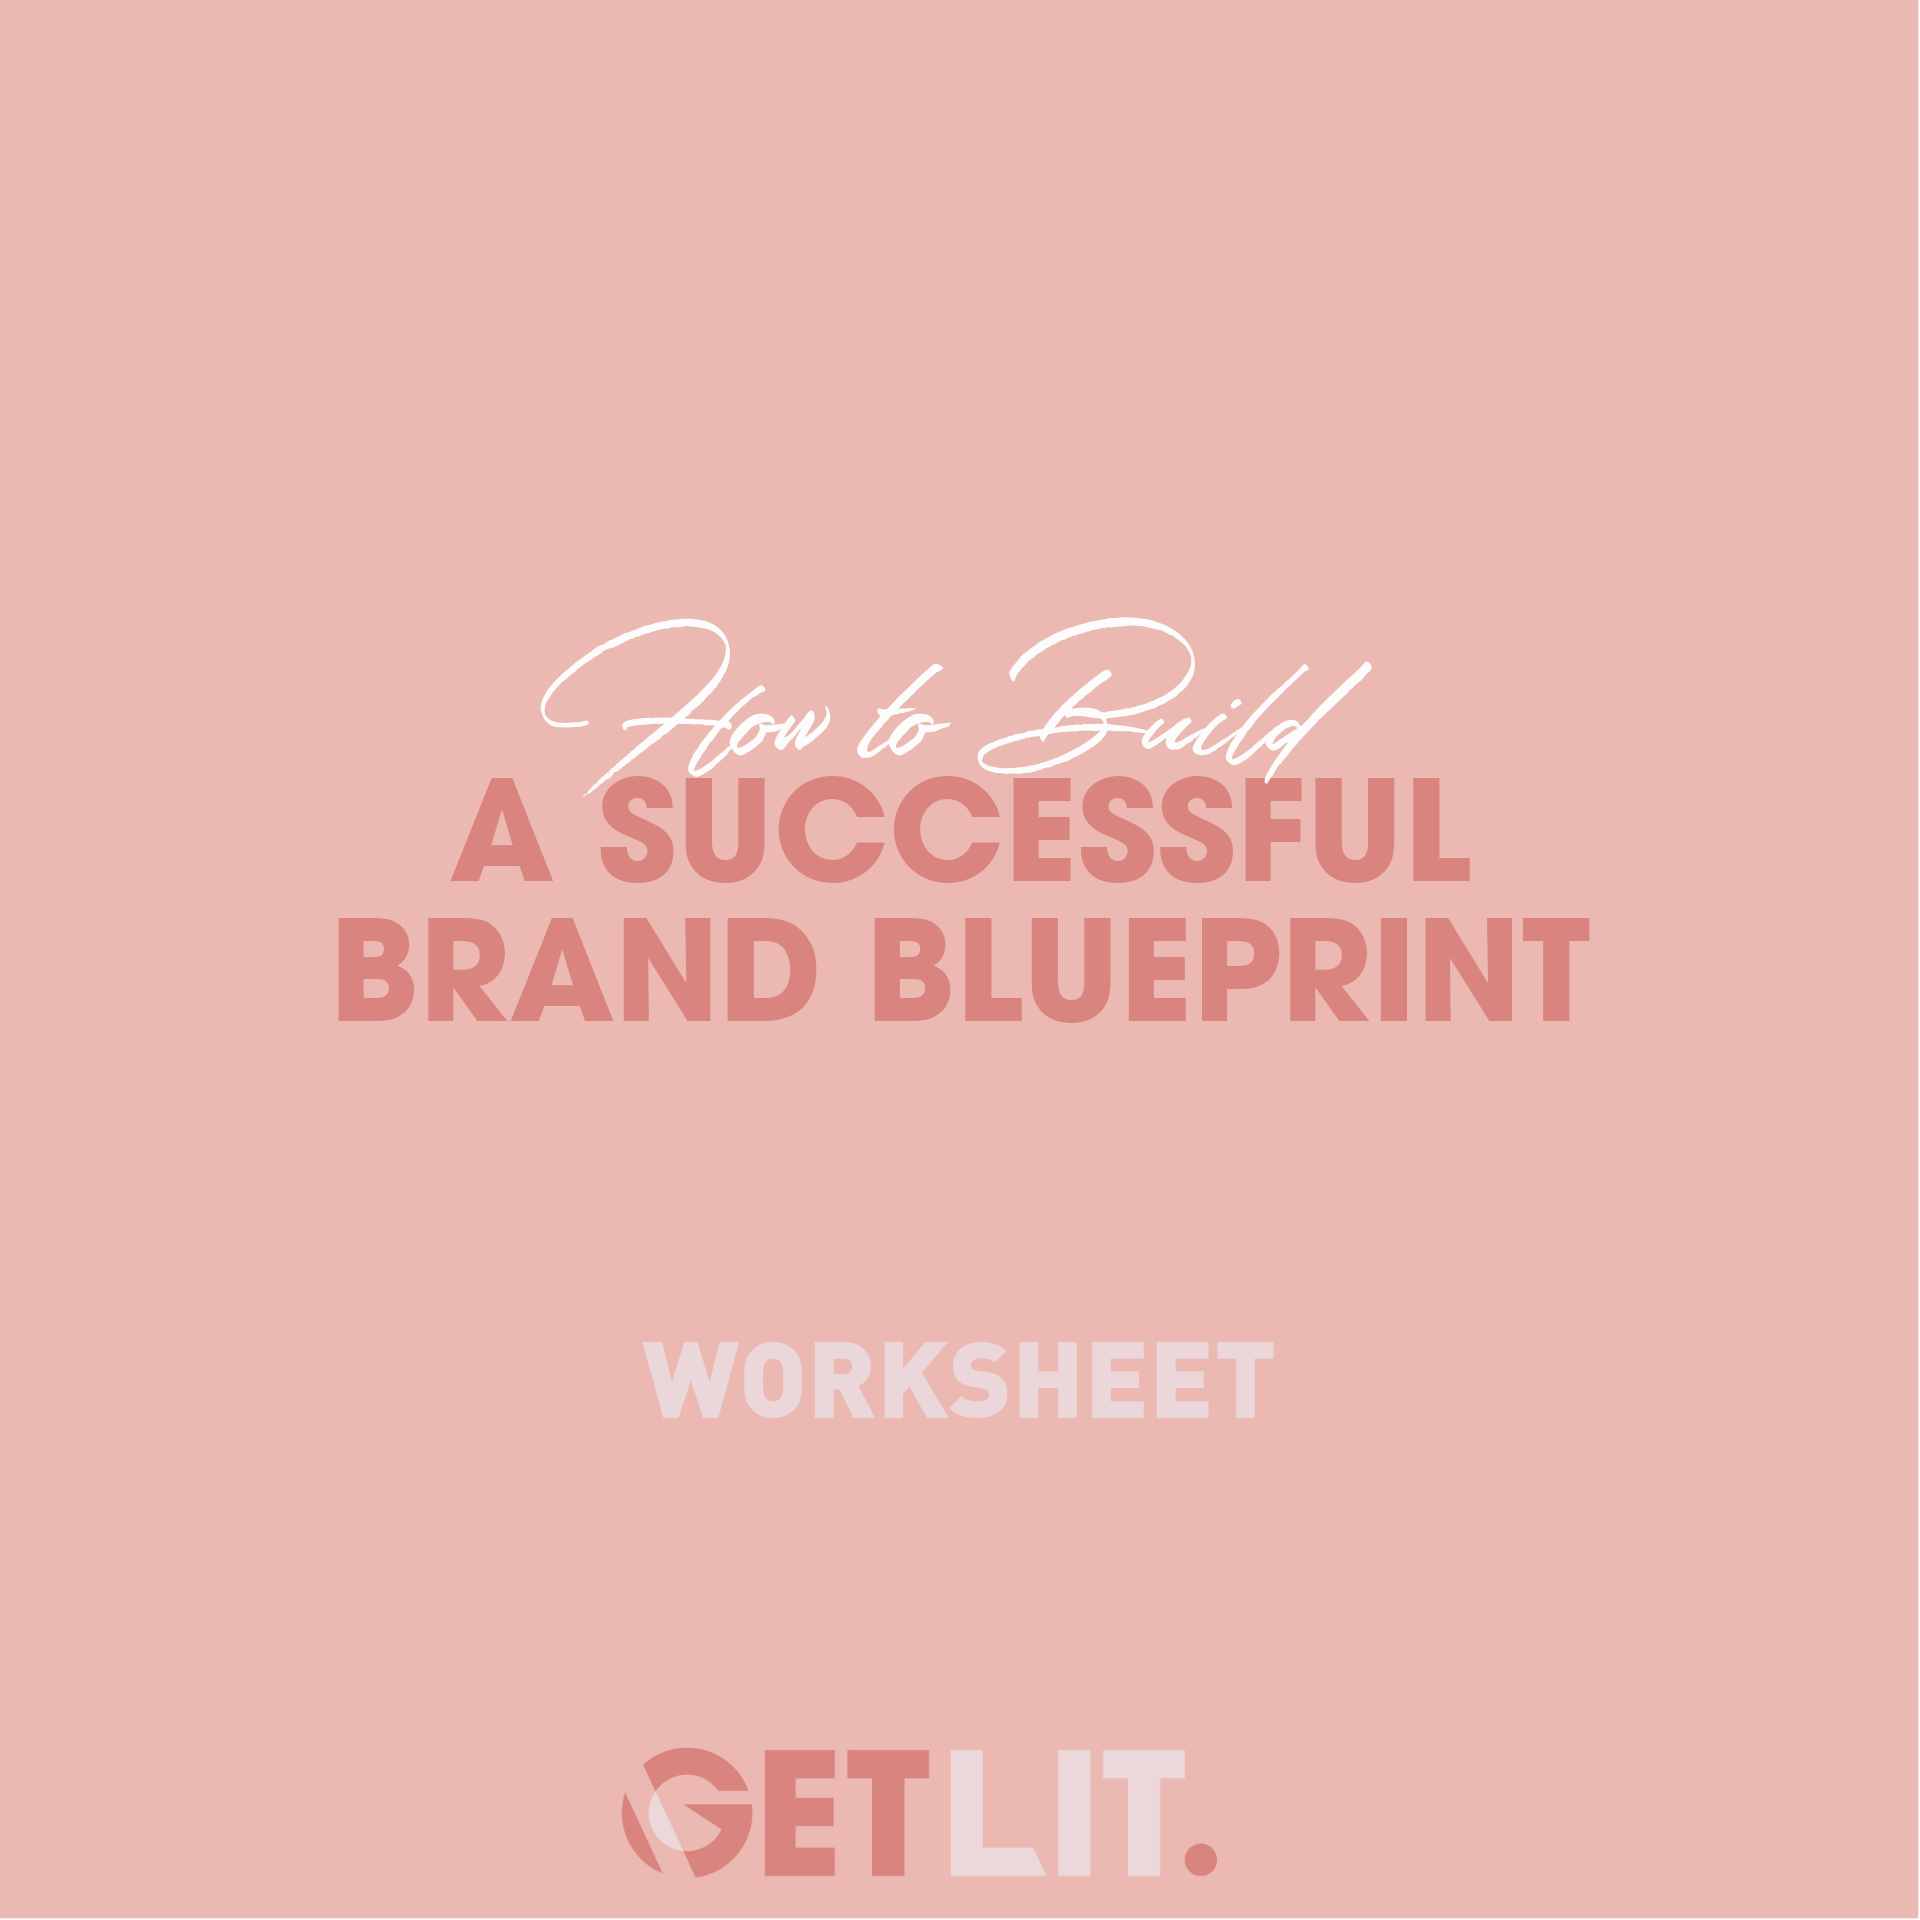 HOW TO BUILD A SUCCESSFUL BRAND BLUEPRINT - A brand blueprint is the visual definition of your brand. The requirements, style-guide and foundation. Having a blueprint helps create a clear and concise visual marketing concept for you brand to ensure the best branding. This worksheet will help you suss out the best way to build a brand blueprint fro your brand.